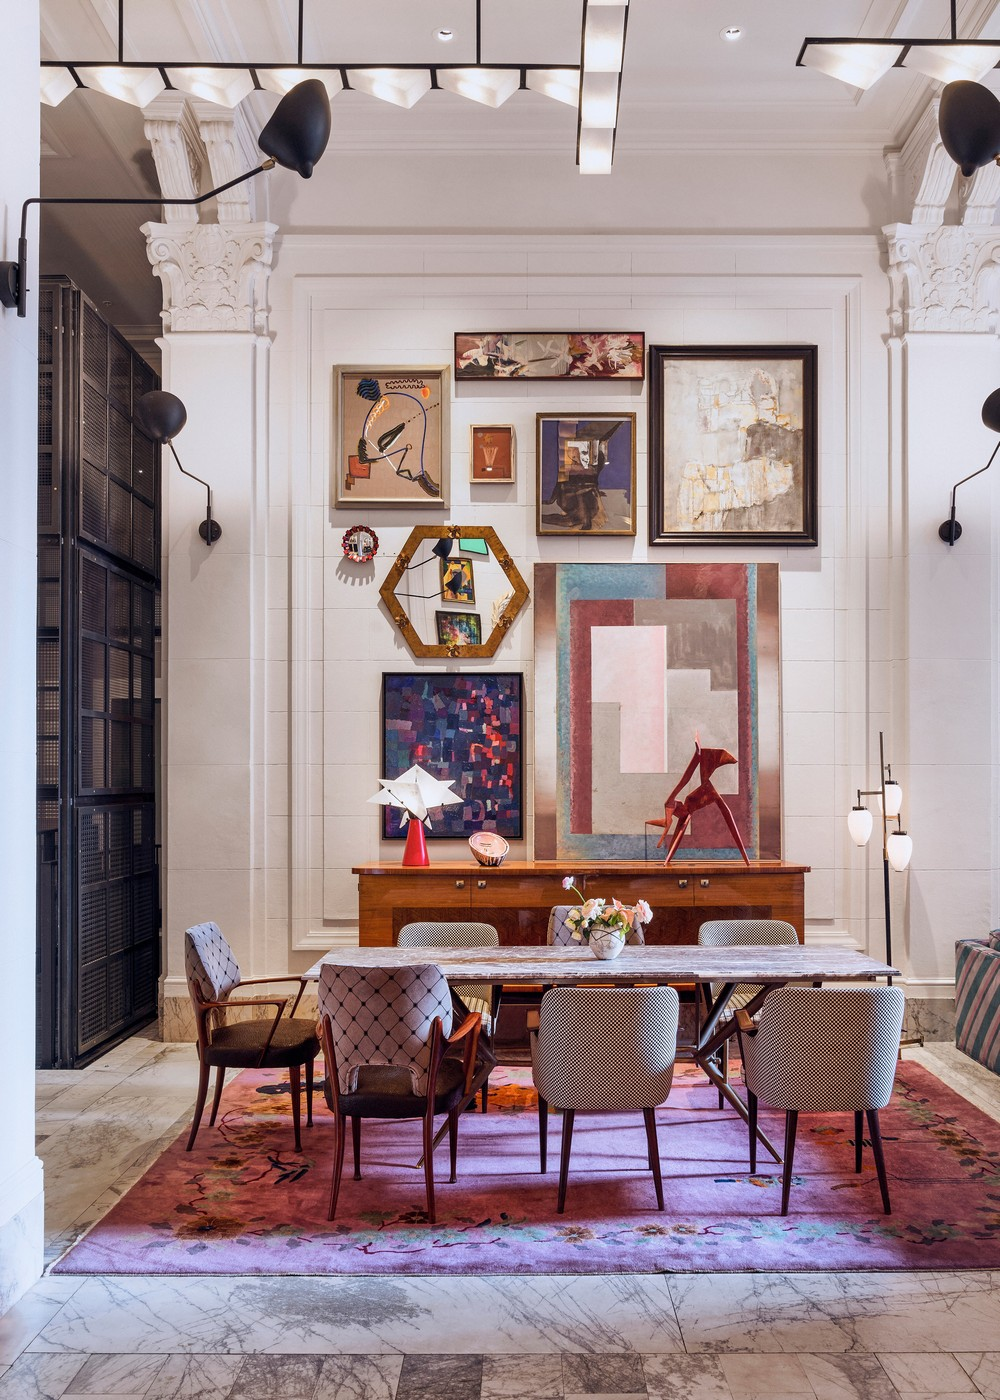 top interior designers Shop The Look: Dining Room Ideas By Top Interior Designers kelly wearstler Dezeen